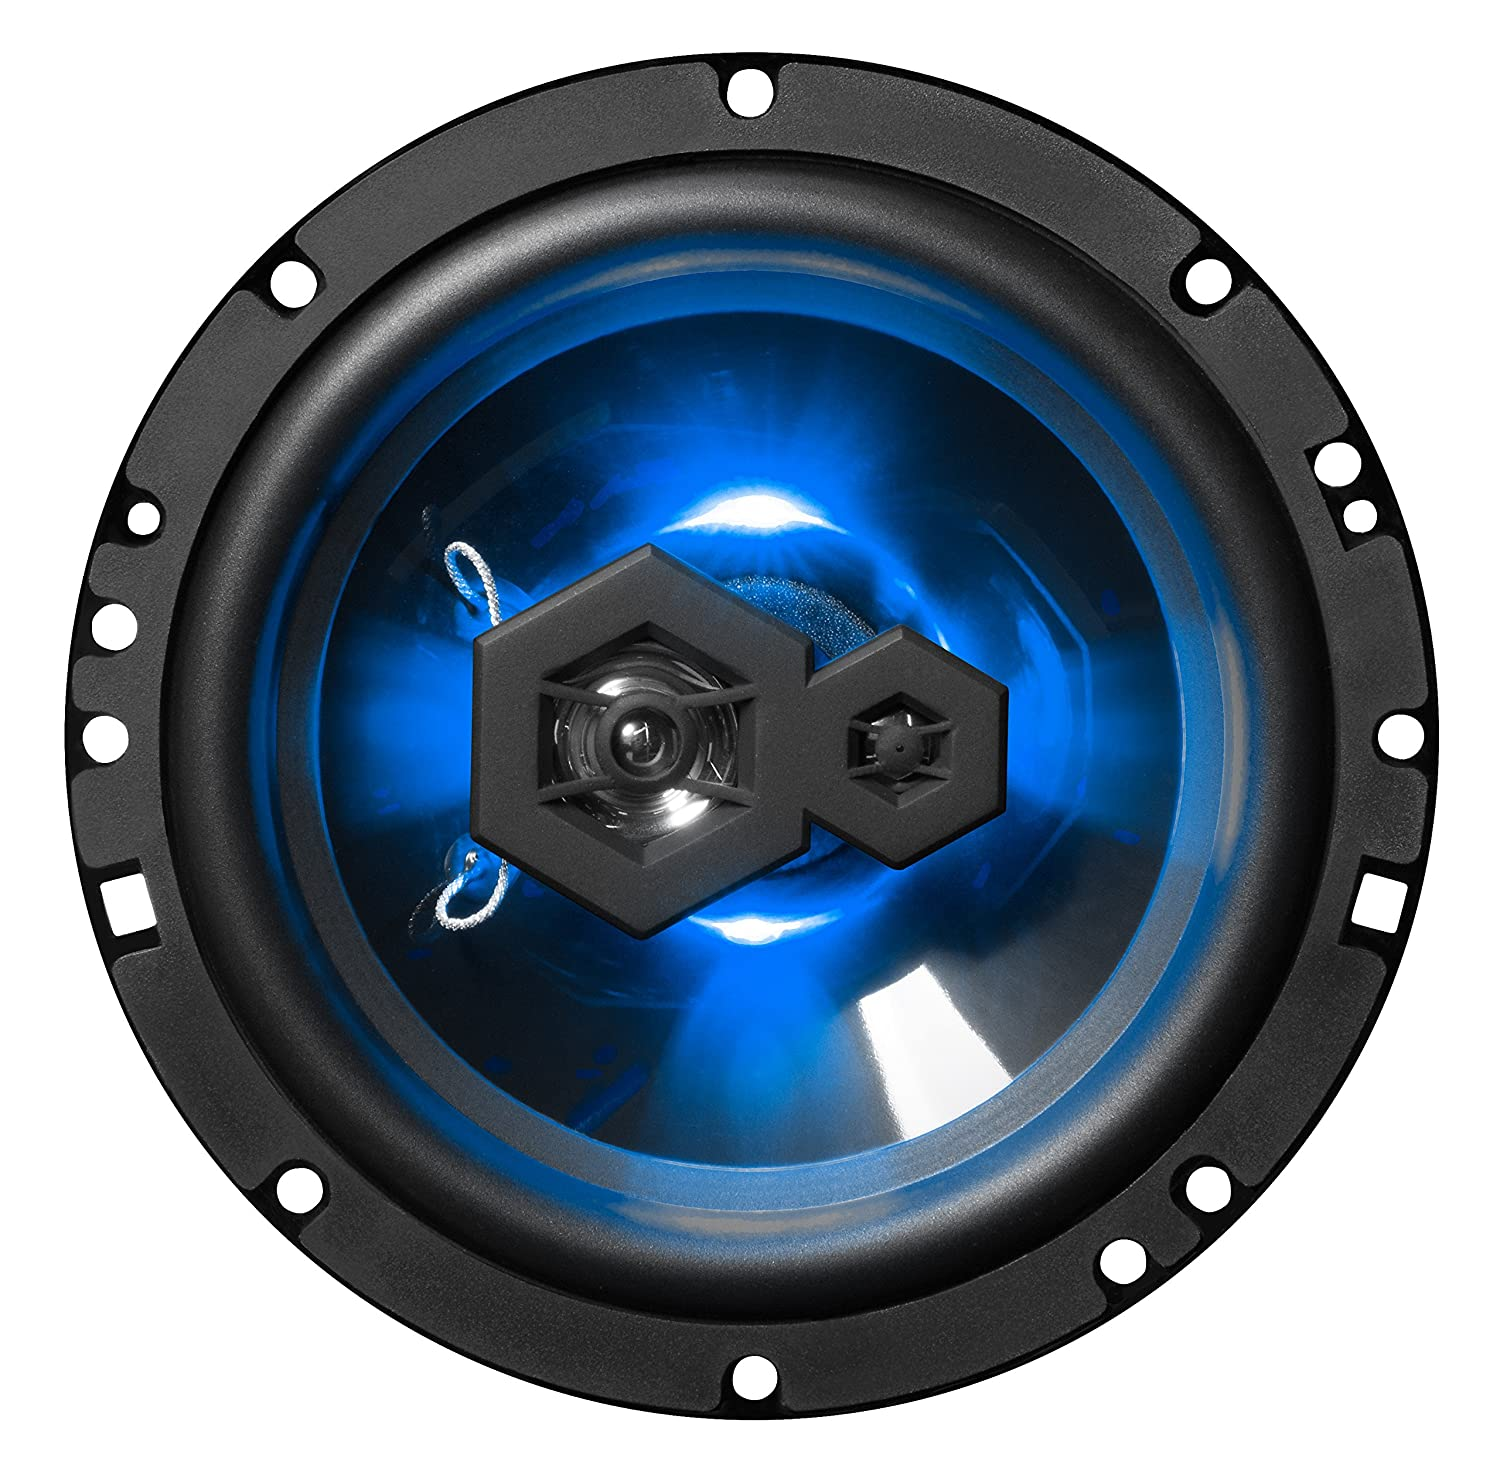 300 Watts of Power Per Pair 150 Watts Each BOSS Audio Systems Elite B65LED 6.5 Inch Car Speakers Sold in Pairs 3 Way